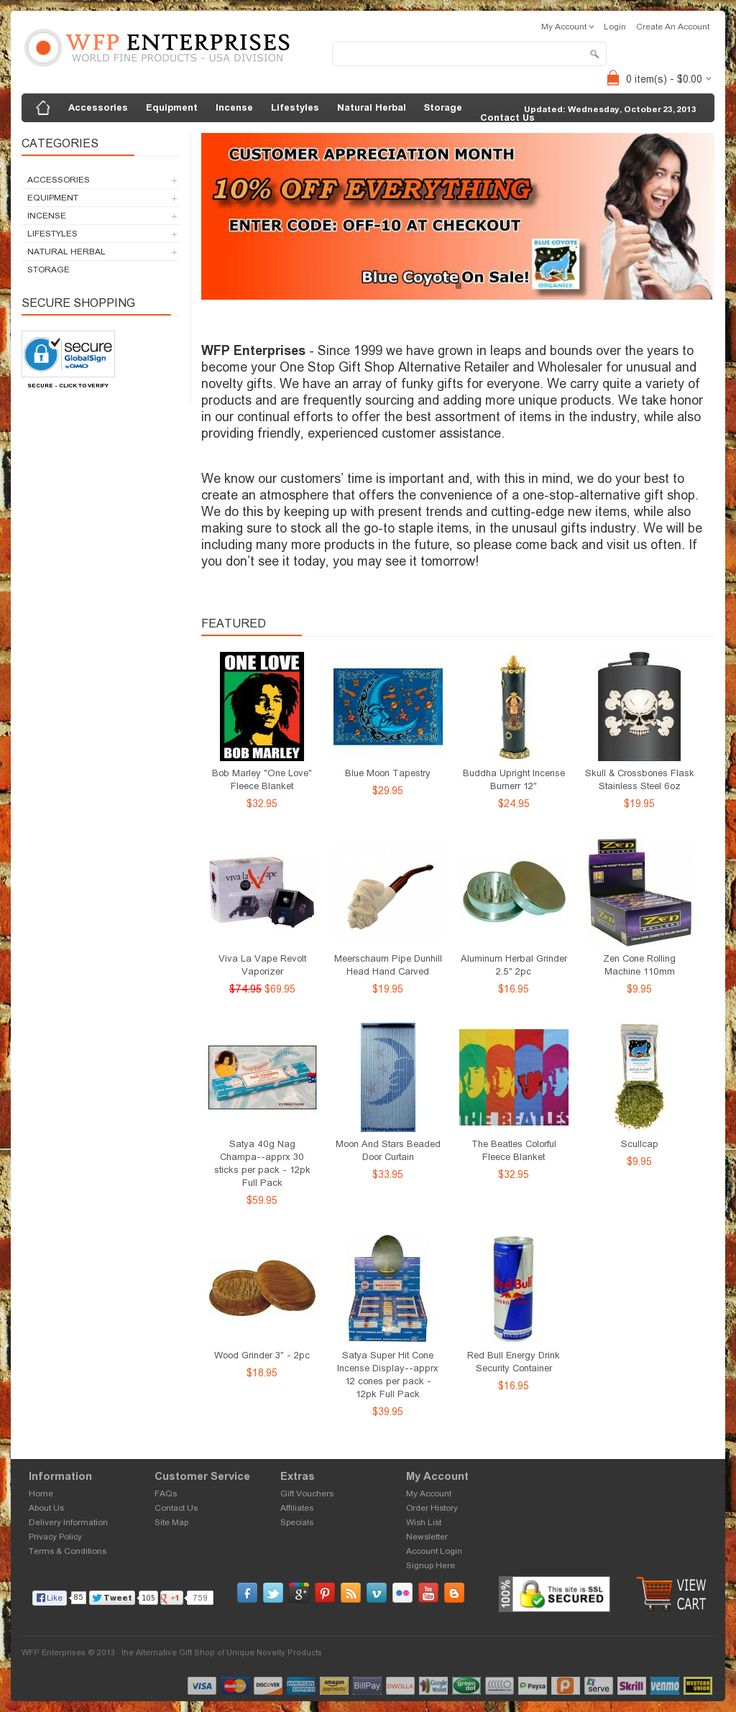 http://www.wfpenterprises.com/ - WFP Enterprises - Since 1999 we have grown in leaps and bounds over the years to become your One Stop Gift Shop Alternative Retailer and Wholesaler for unusual and novelty gifts. We have an array of funky gifts for everyone.